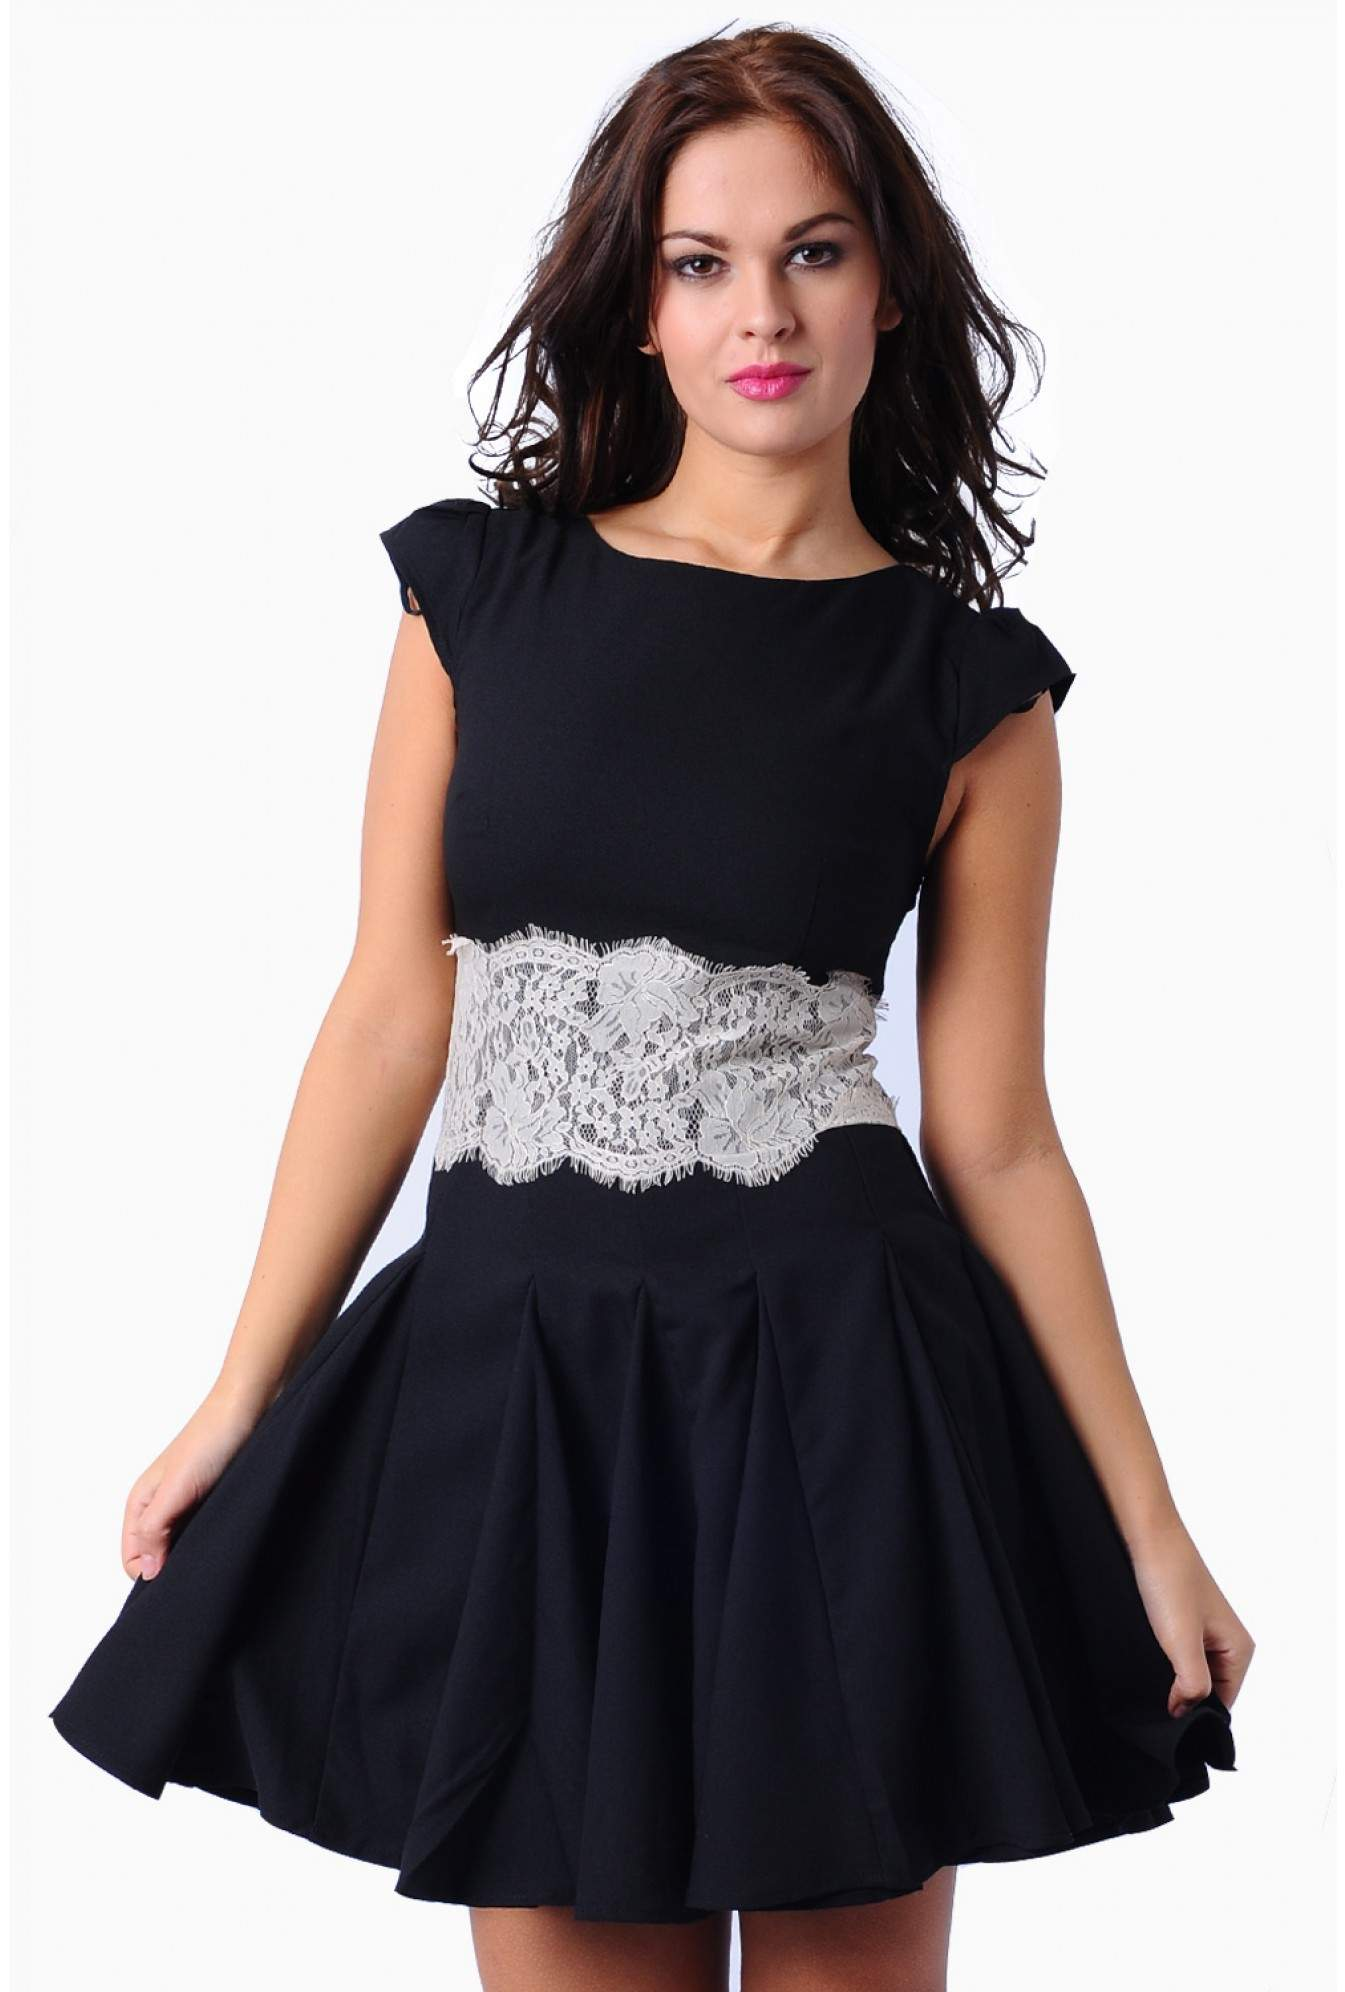 More Views. Mandy Lace Waist Skater Dress in Black. AX Paris 9ed071755